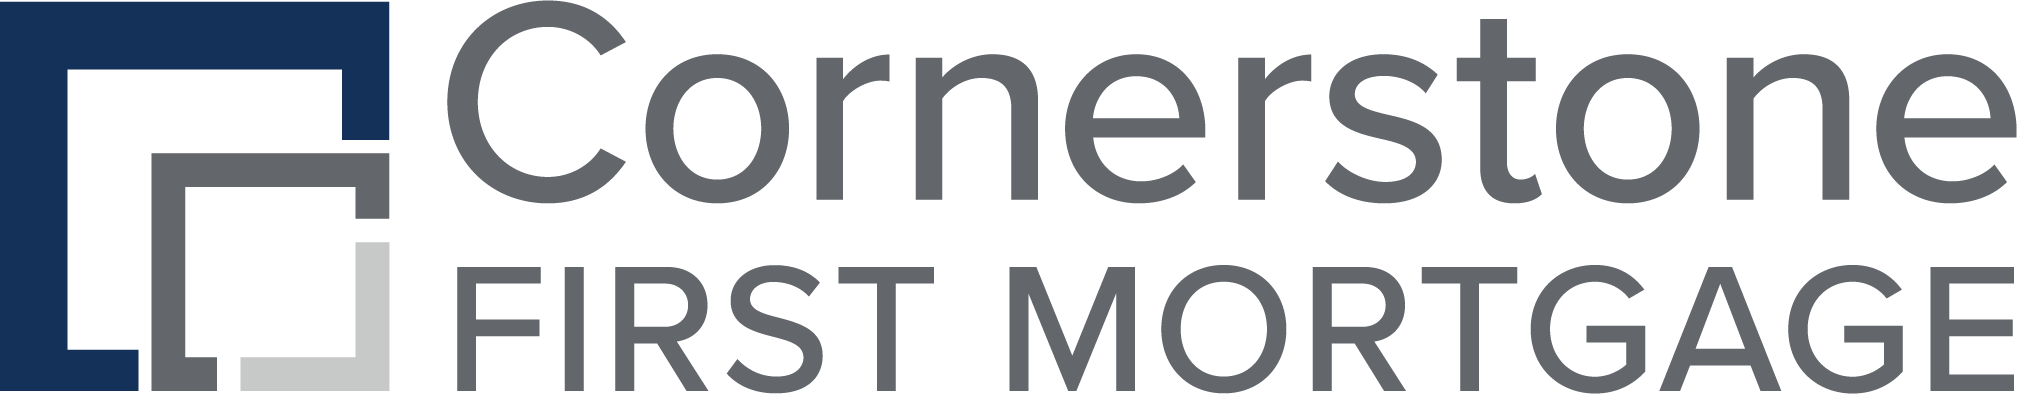 Cornerstone First Mortgage